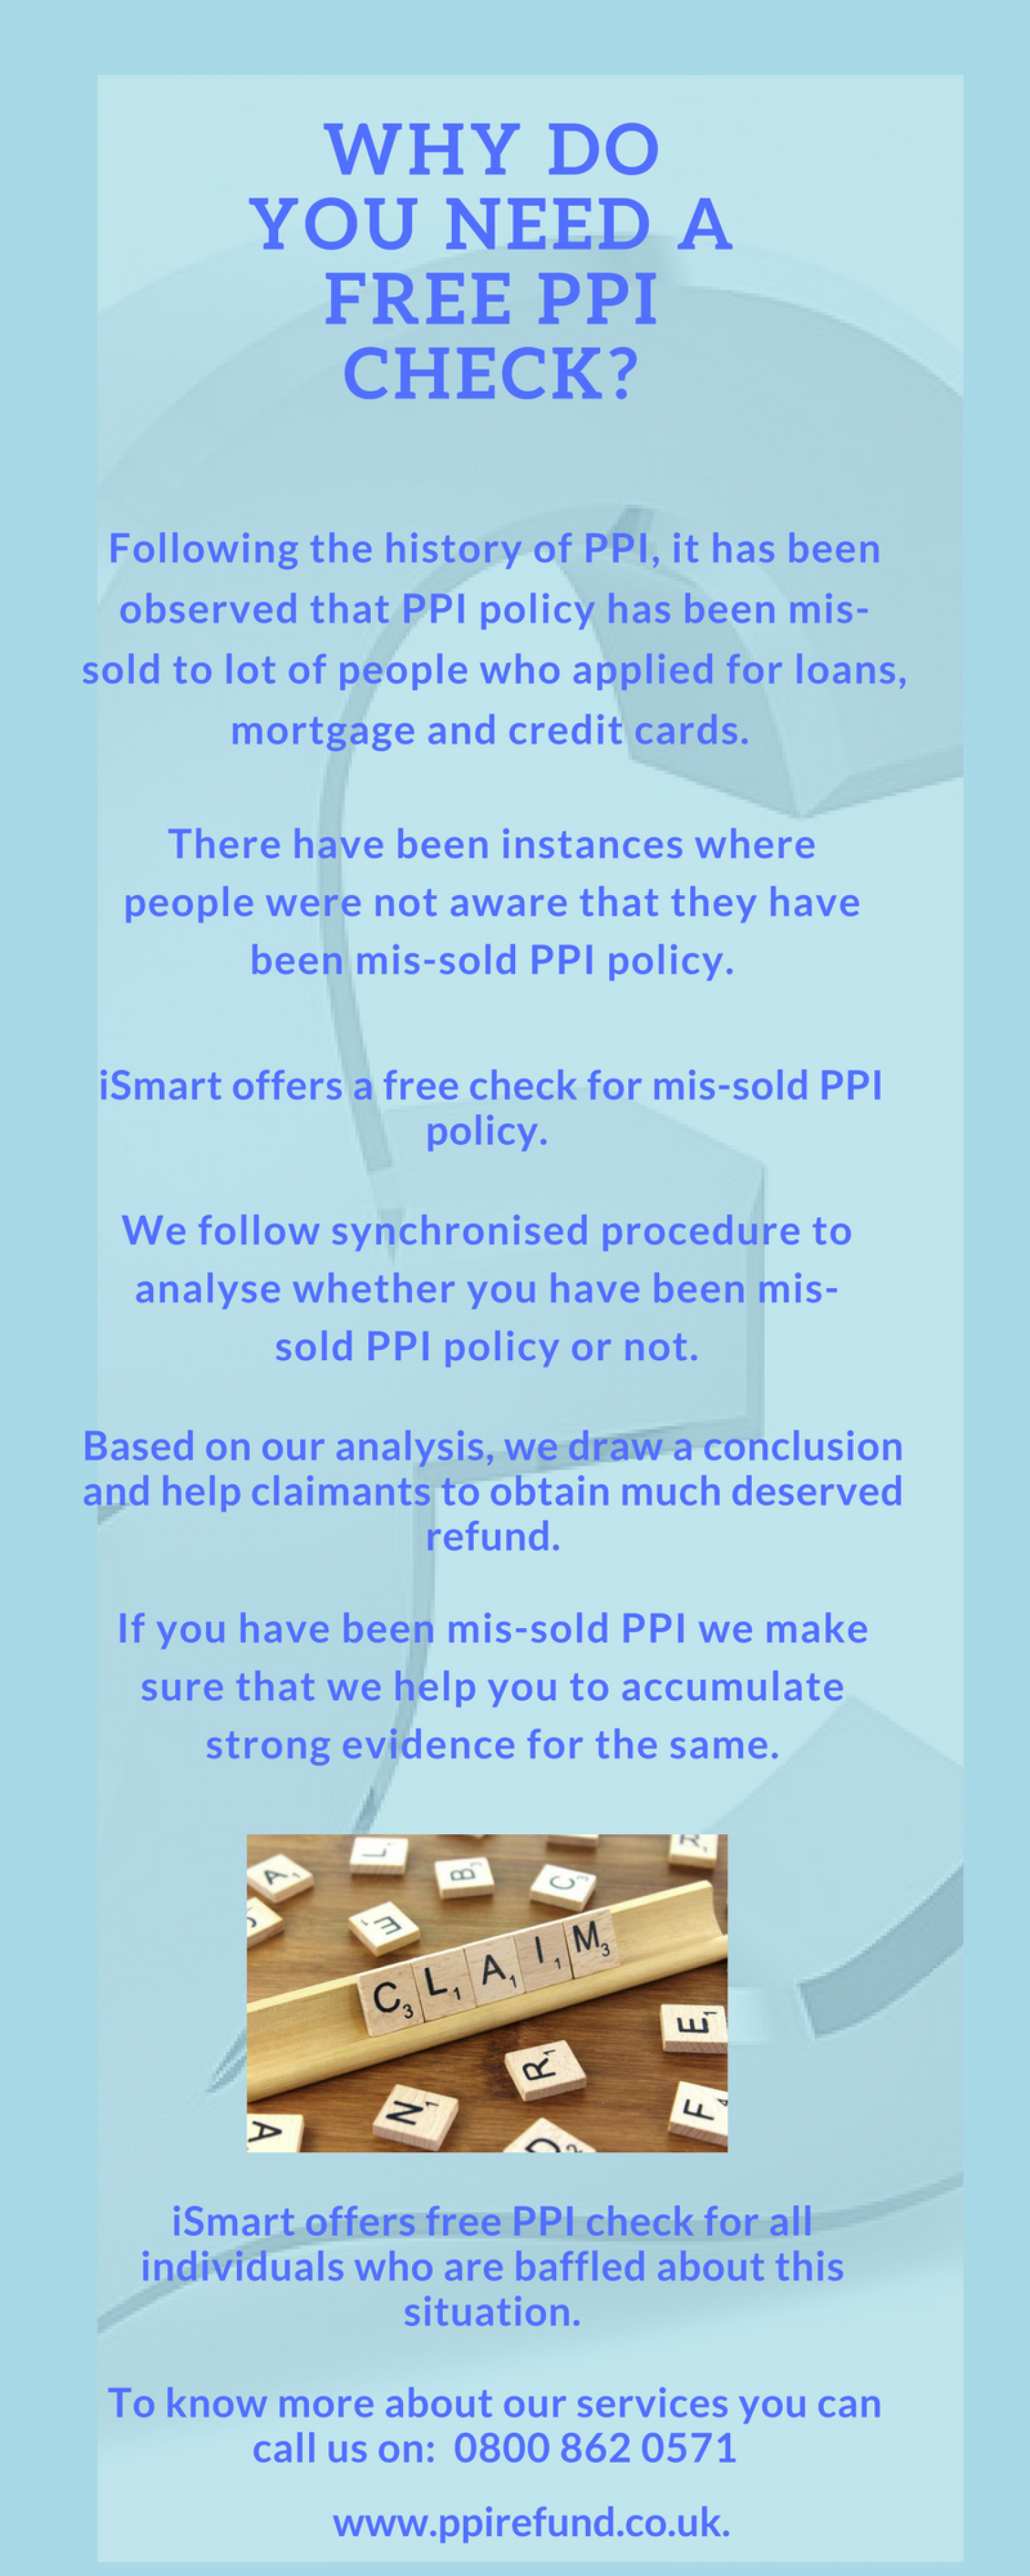 Why Do You Need A Free PPI Check? Infographic